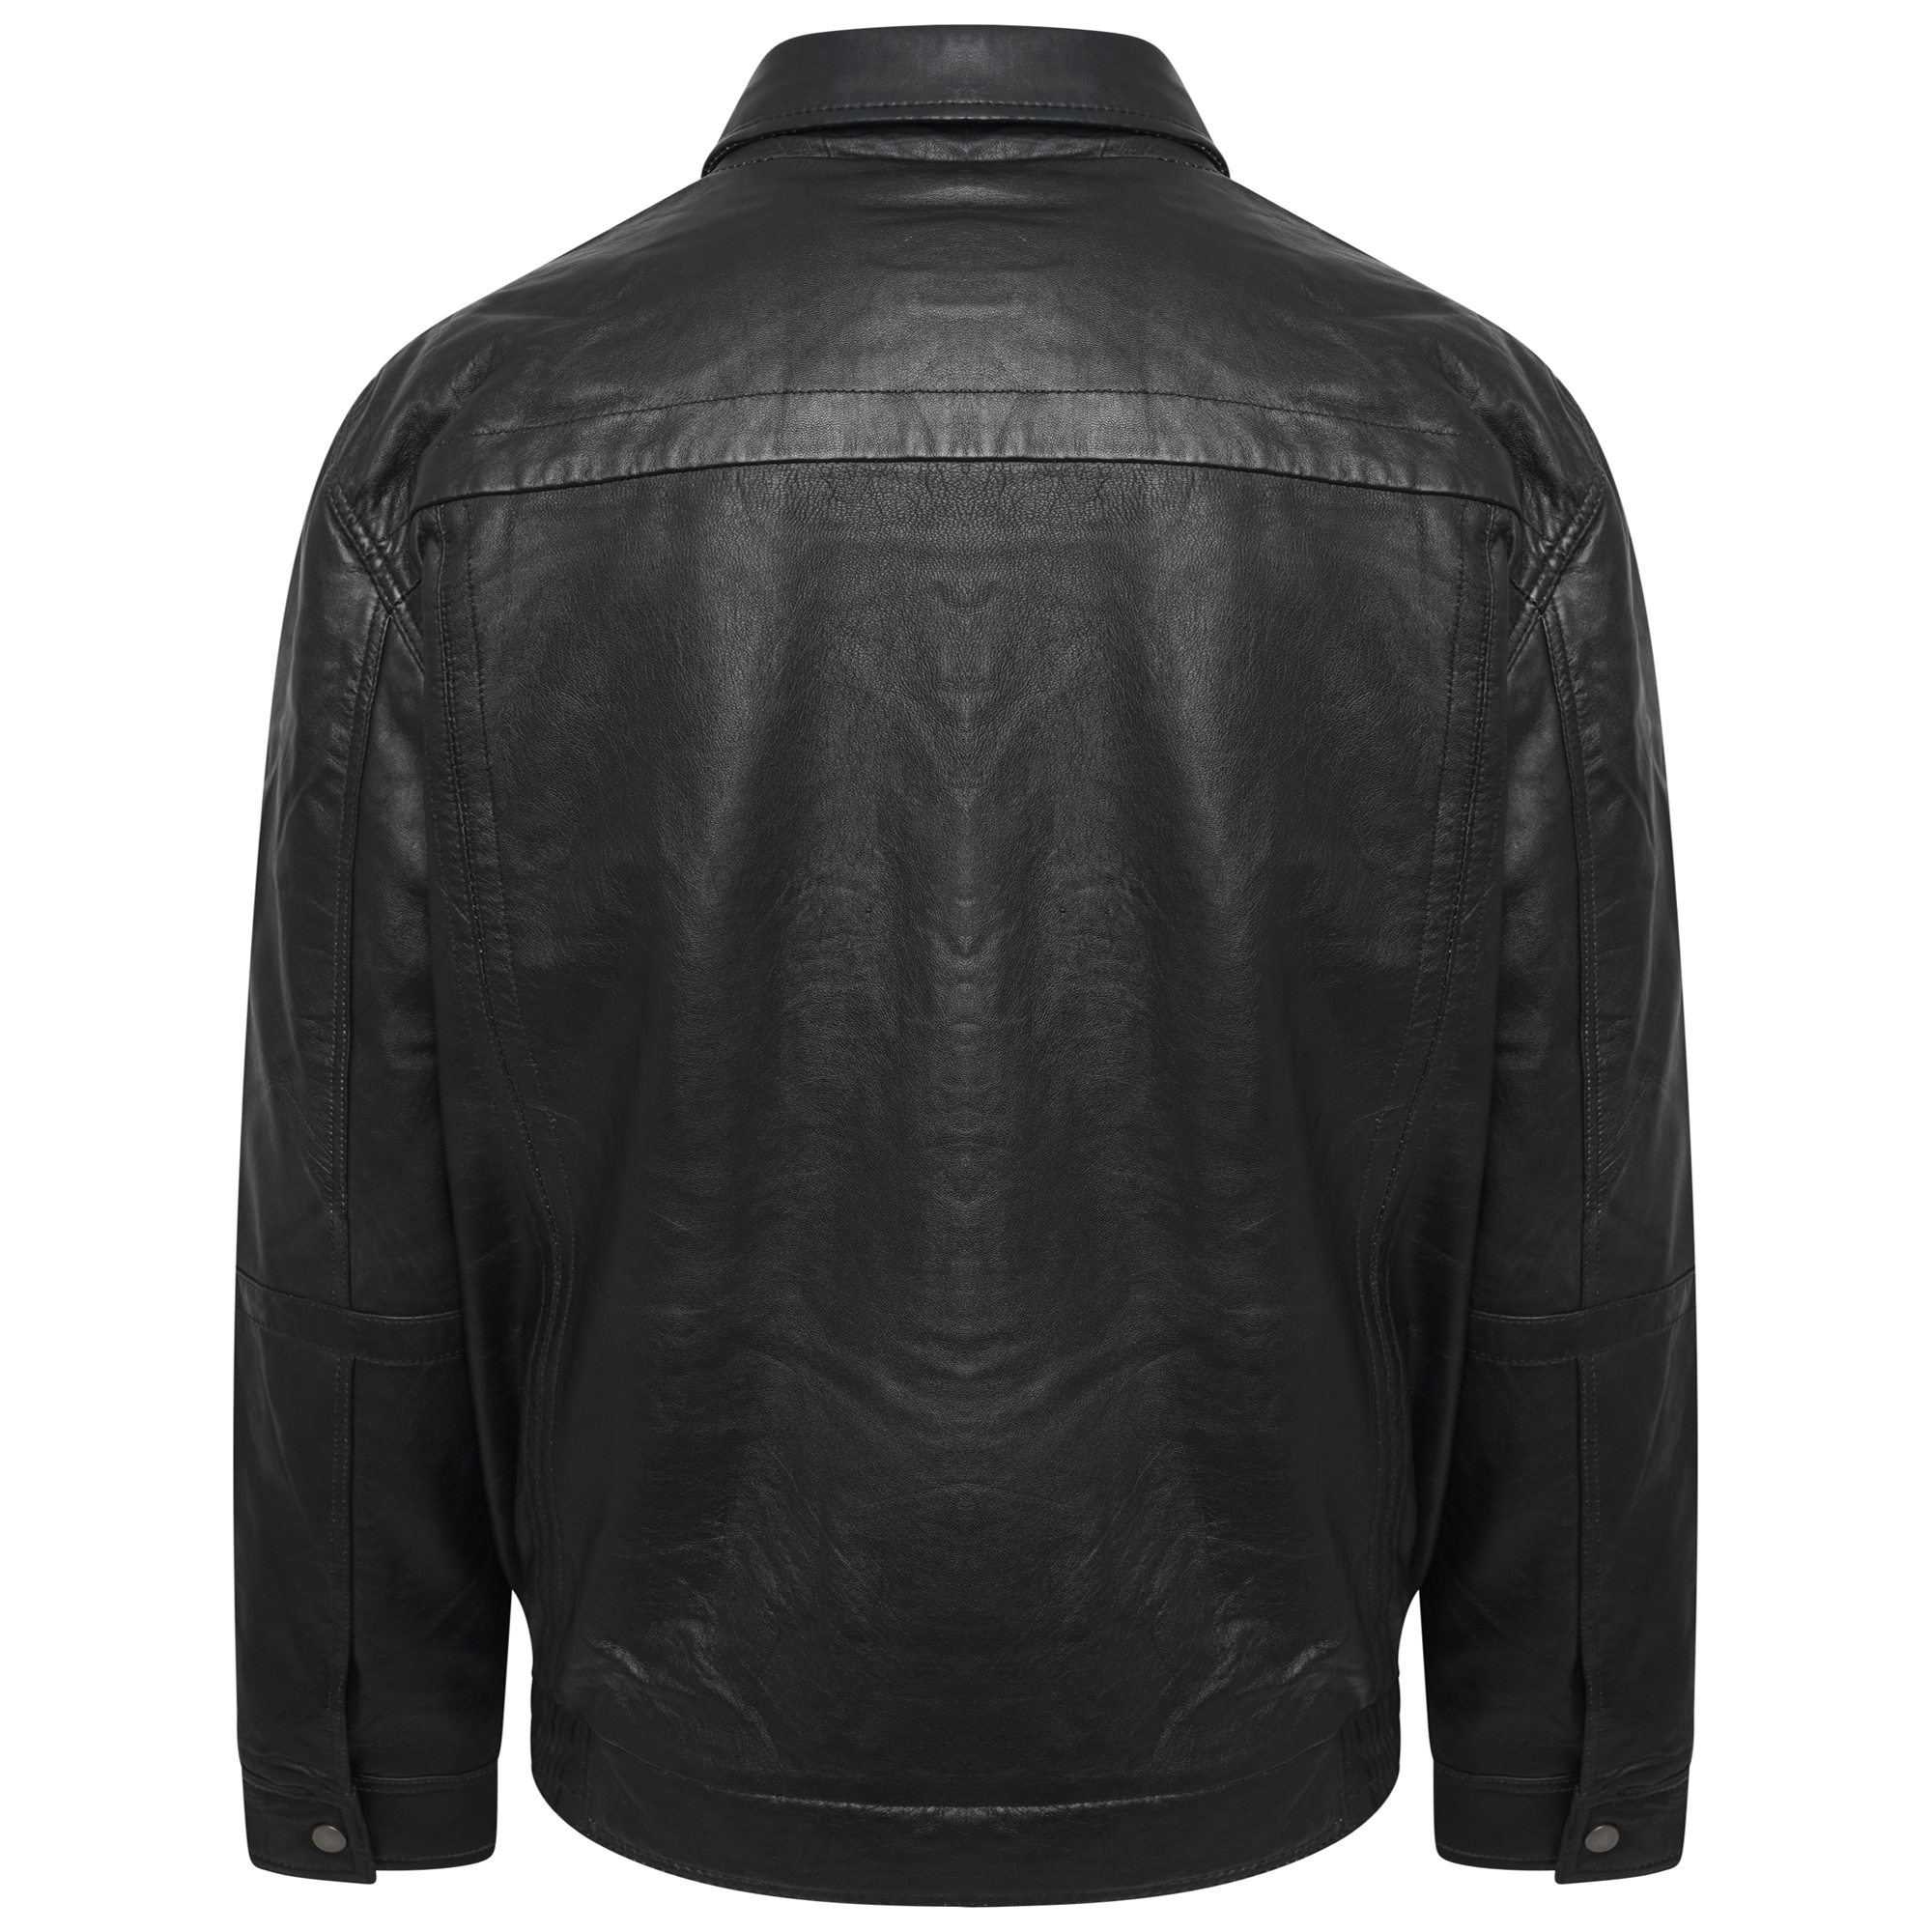 Approx. 800 x Men's Classic Heavy Duty Leather Jacket - Image 2 of 4